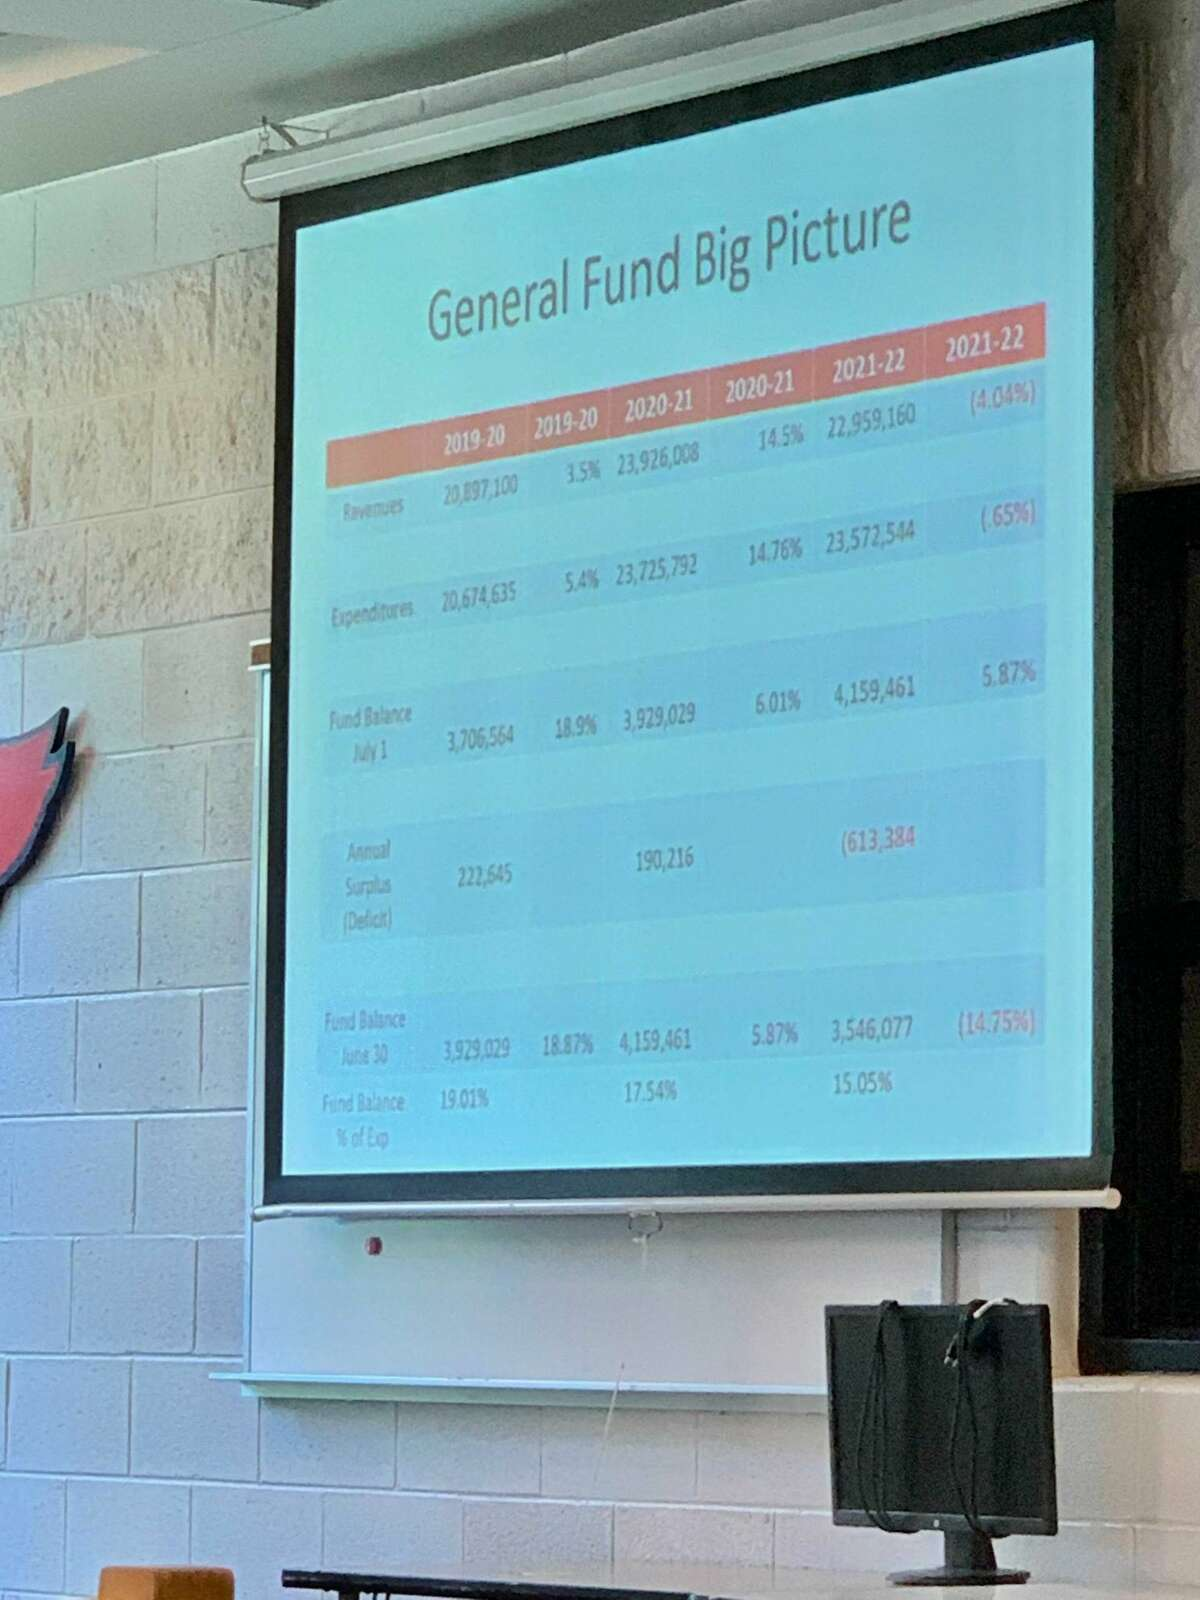 The Big Rapids school board held a special meeting June 14, prior to its regularly scheduled meeting, and reviewed and approved amendments for the new year's financial budget.